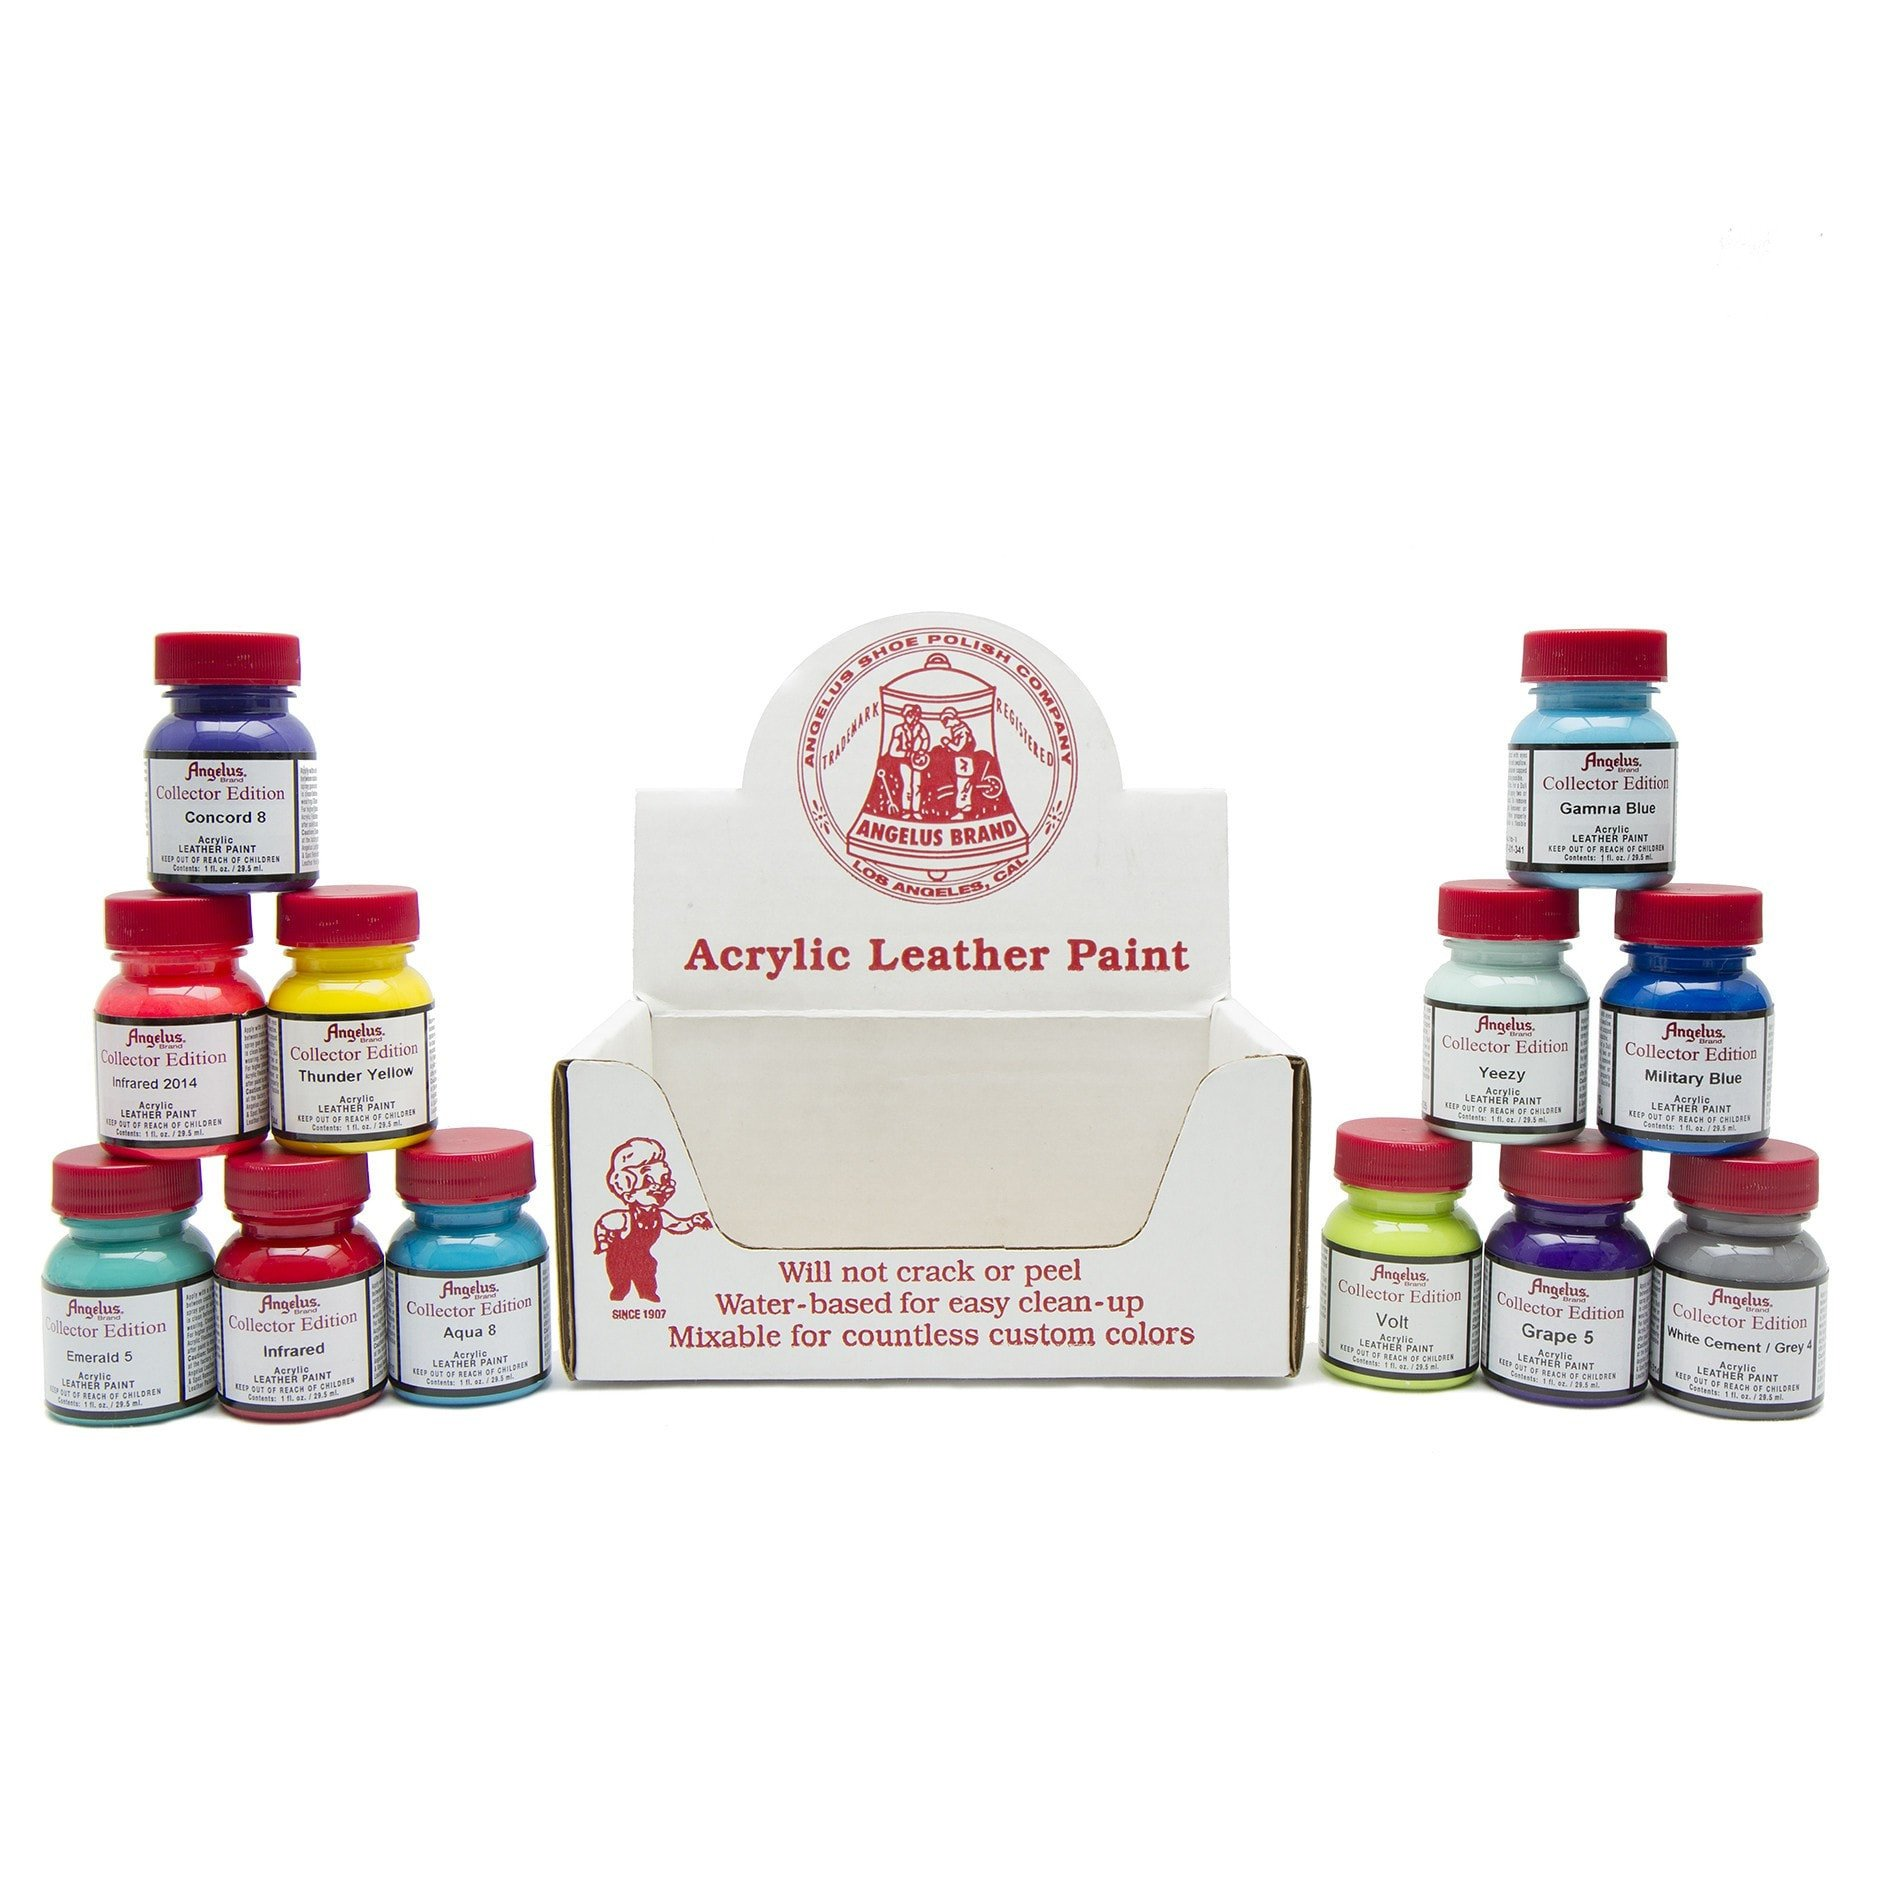 12 Color Collector Edition Assortment Kit